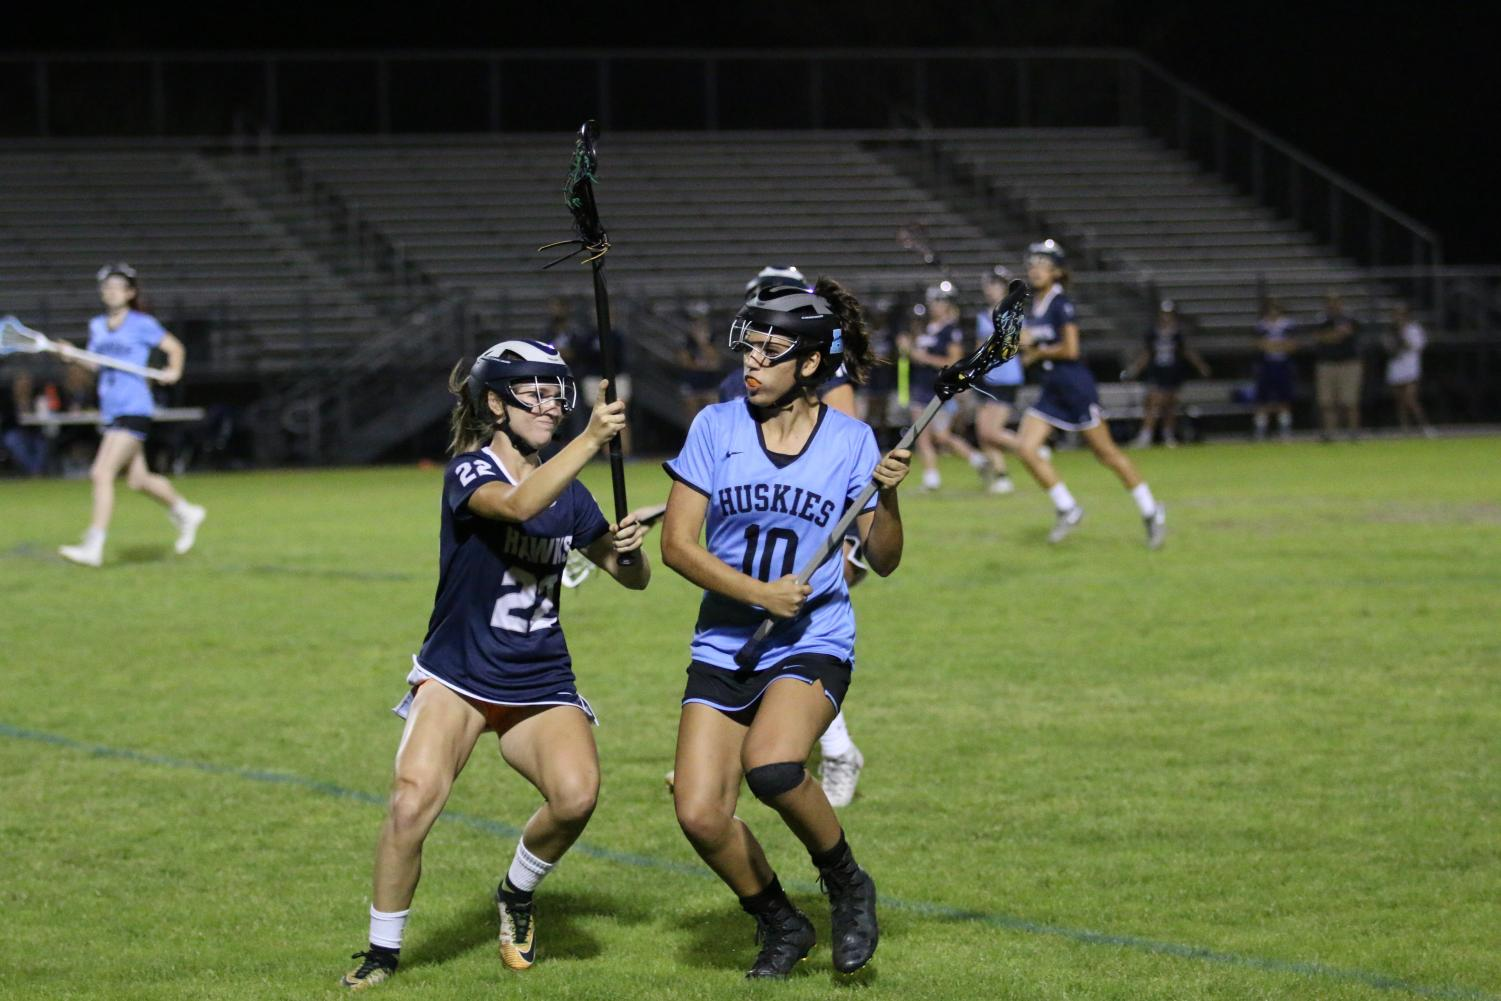 Junior Ashley Rassel works to get around against a Lake Howell player. The game took place on Feb. 27 at the Sam Momary Stadium and resulted in a 19-1 win.